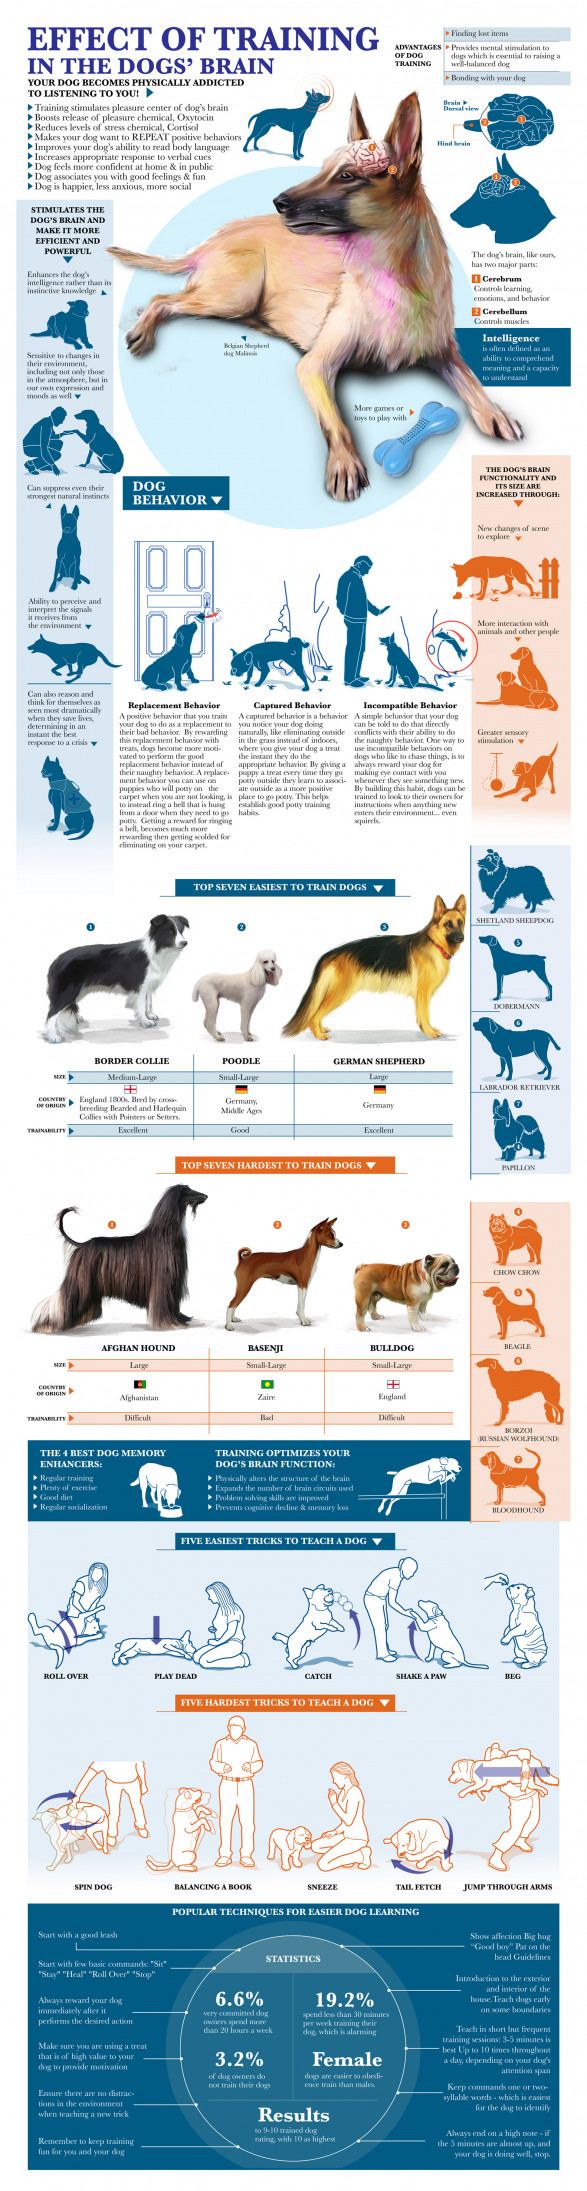 Effect Of Training In The Dog Brain